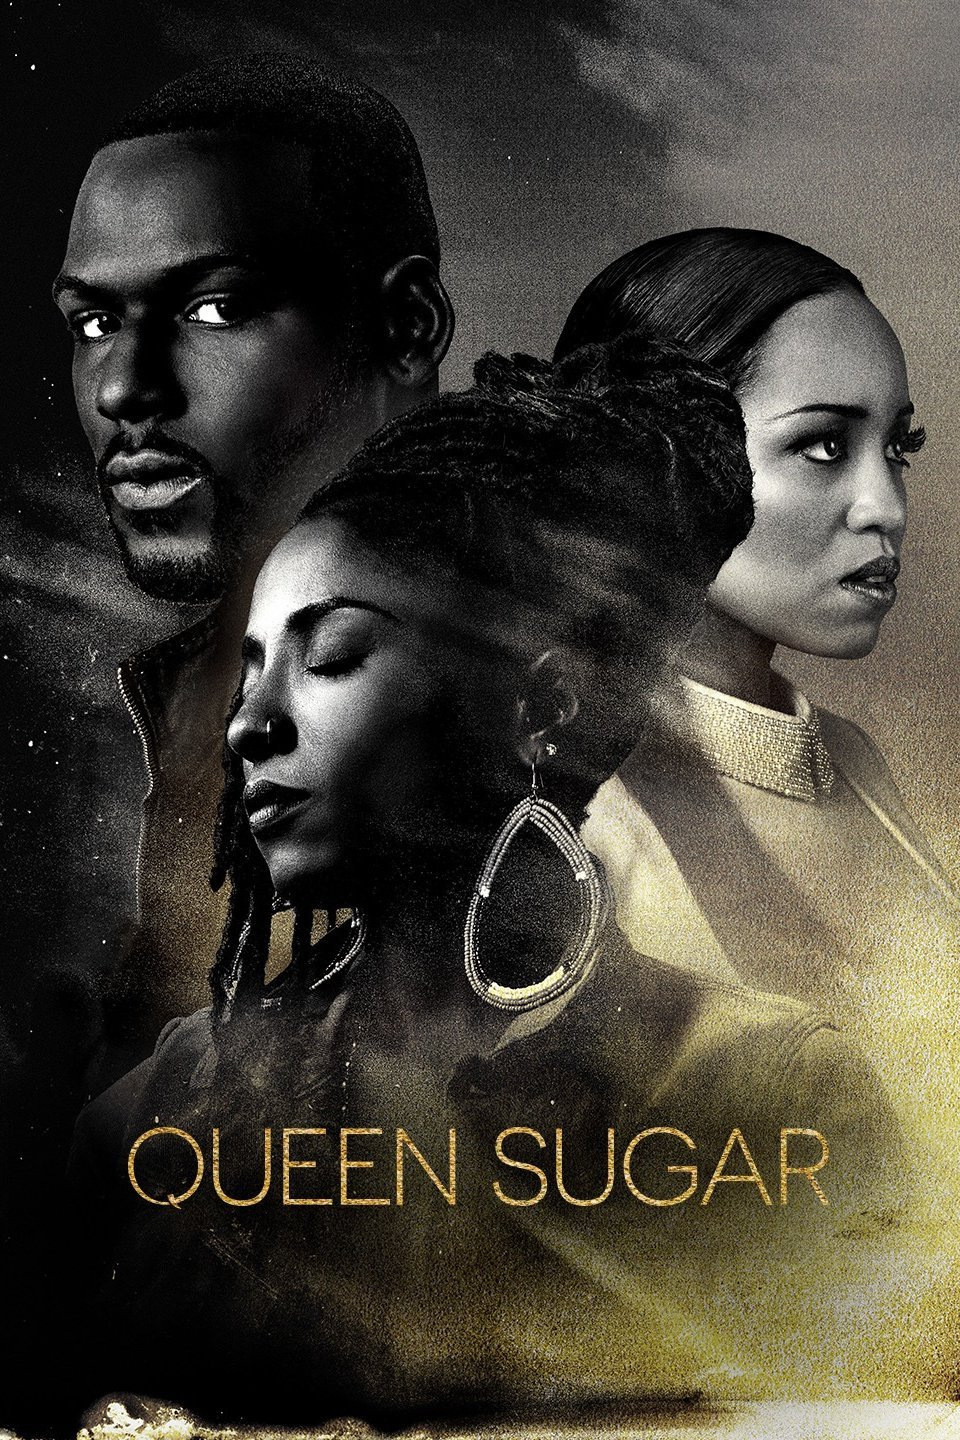 Queen Sugar Season 3 Episode 4 Download HDTV 480p 720p